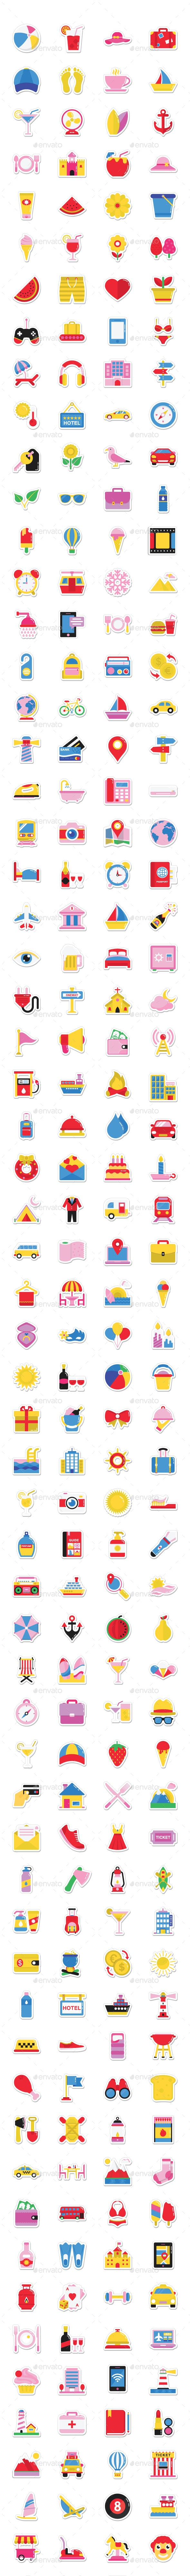 500 Summer and Holidays Stickers - Icons